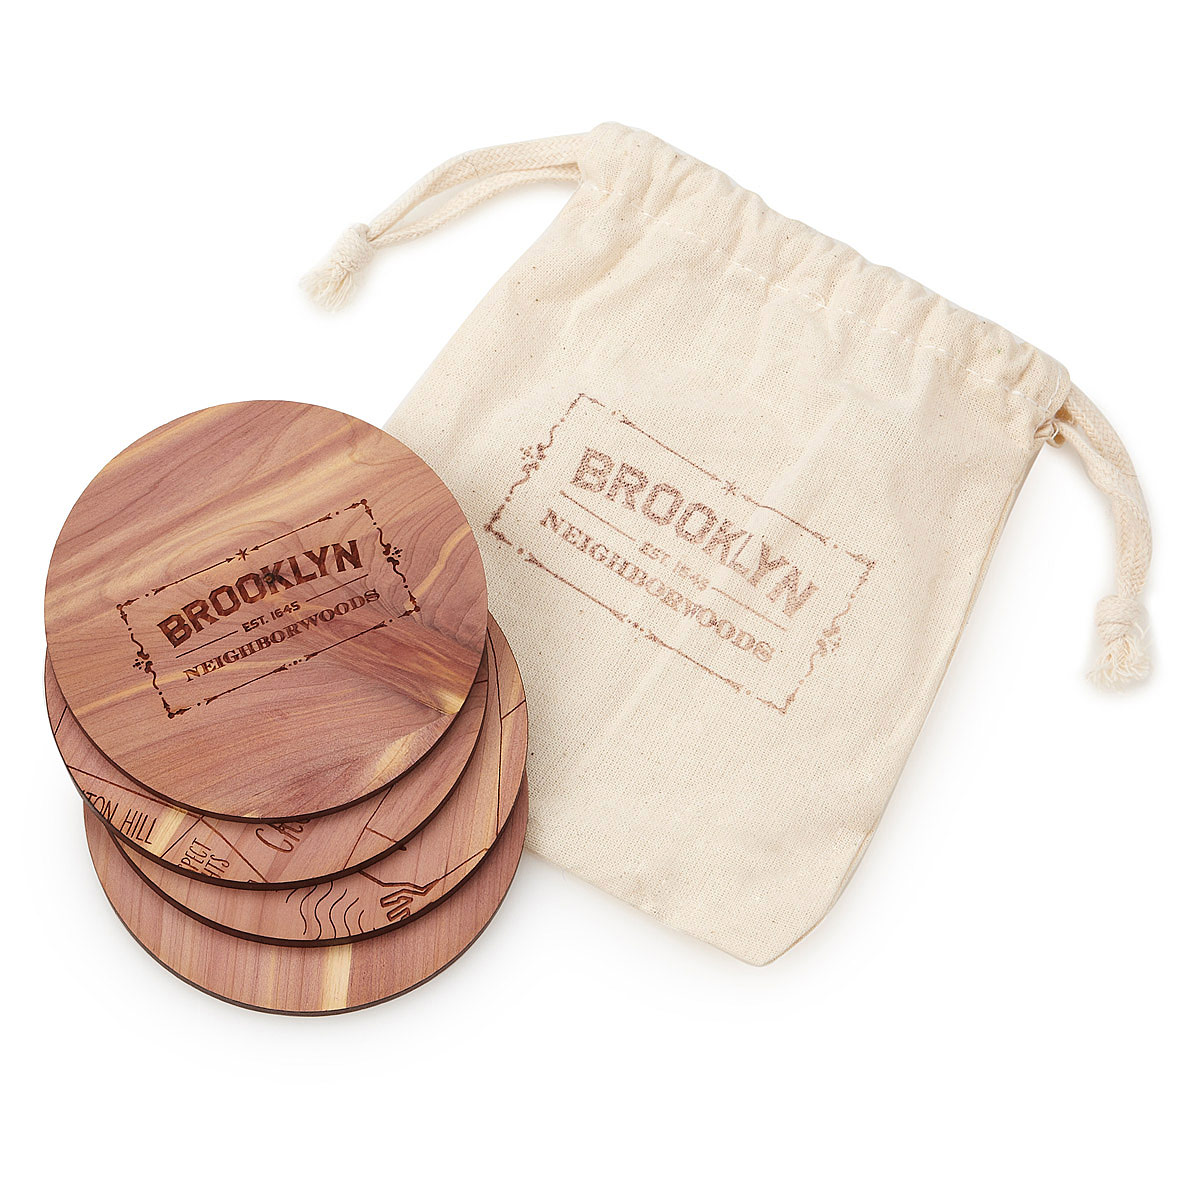 Neighborwoods | Engraved City Coasters made of Wood | Brooklyn